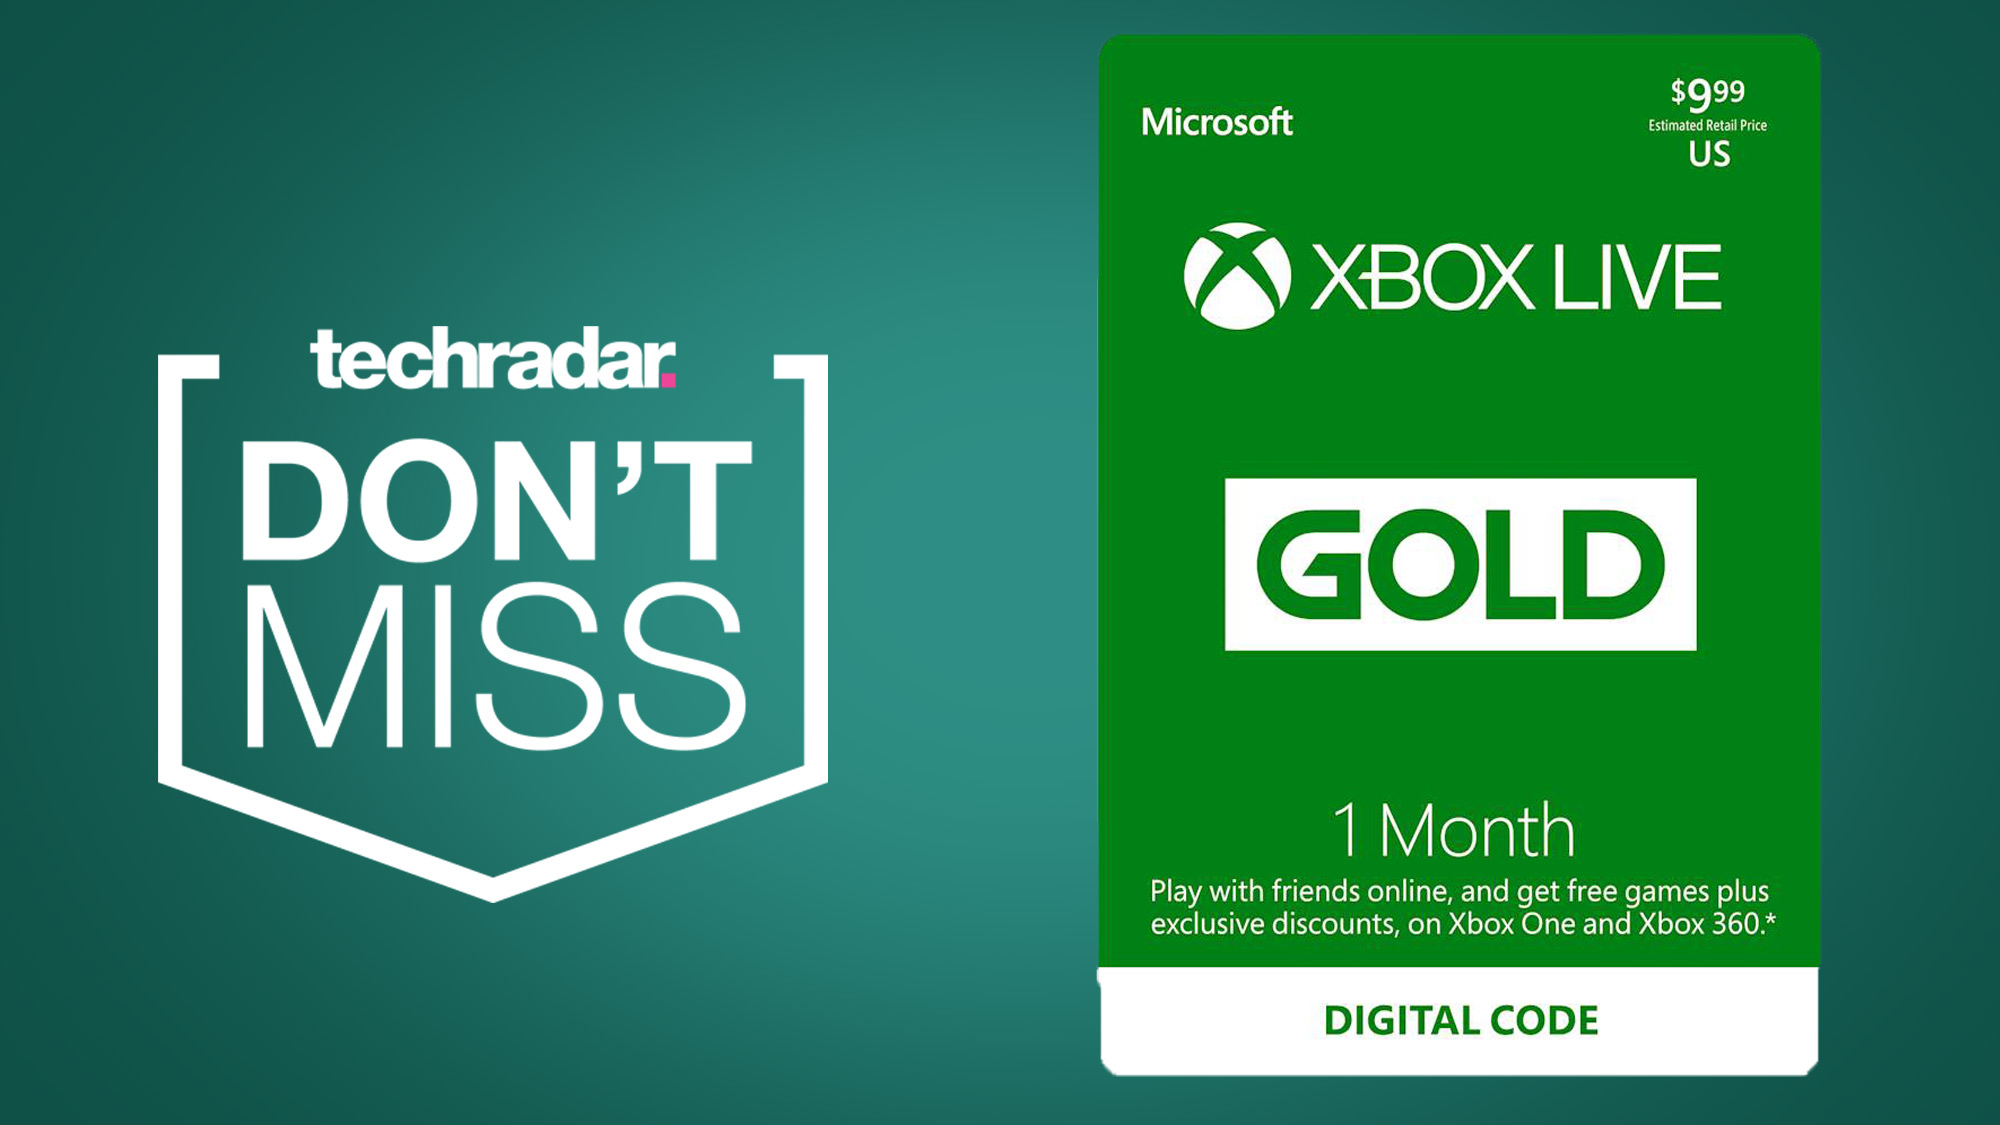 Get Free Xbox Gold Codes xbox live gold for $1 will be your easiest cyber monday